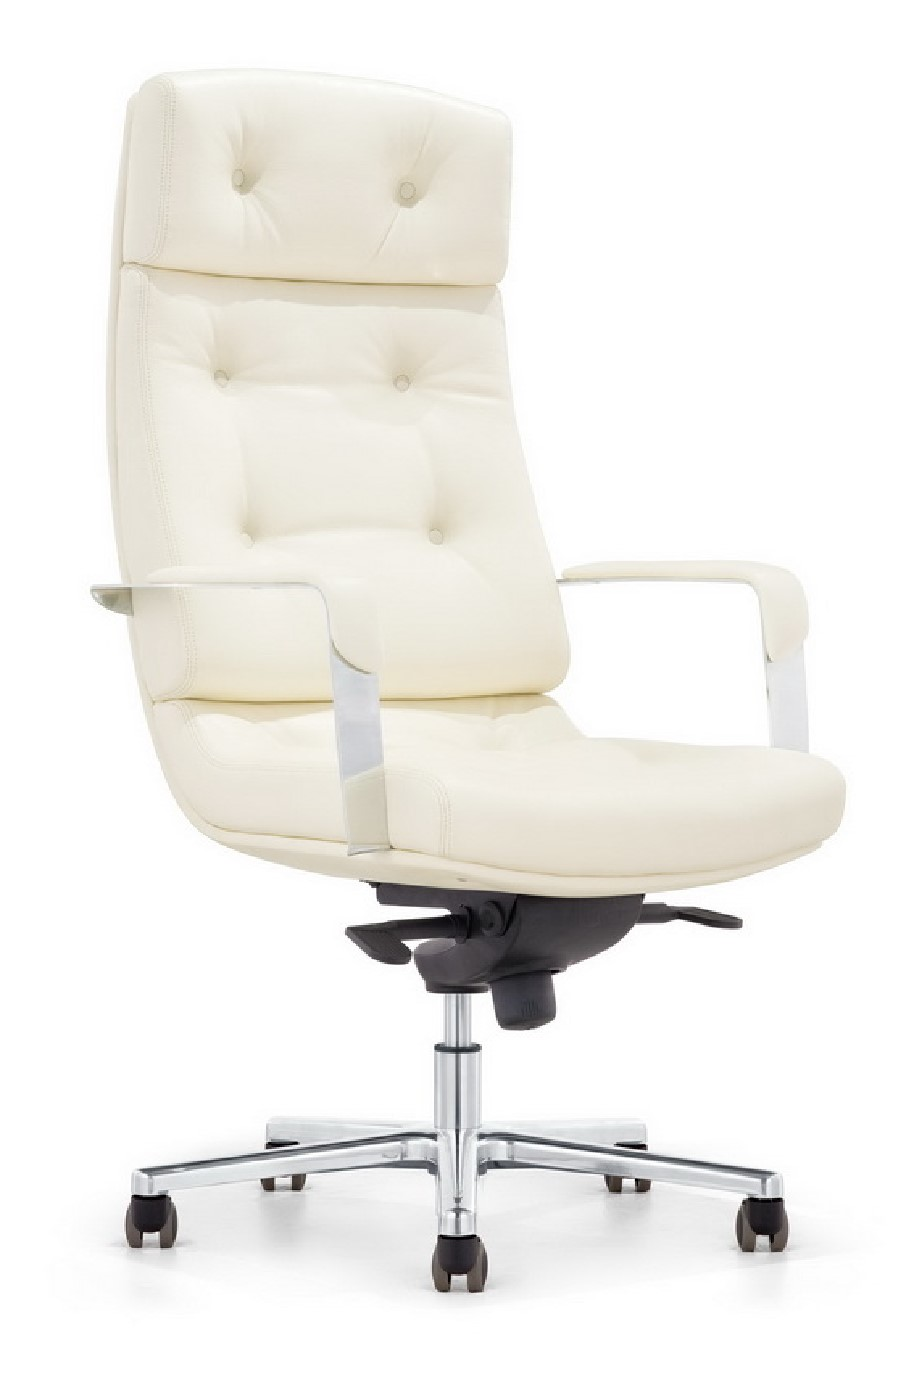 news-High-grade Ergonomic Chairs for Executive Officers-Gojo furniure-img-1